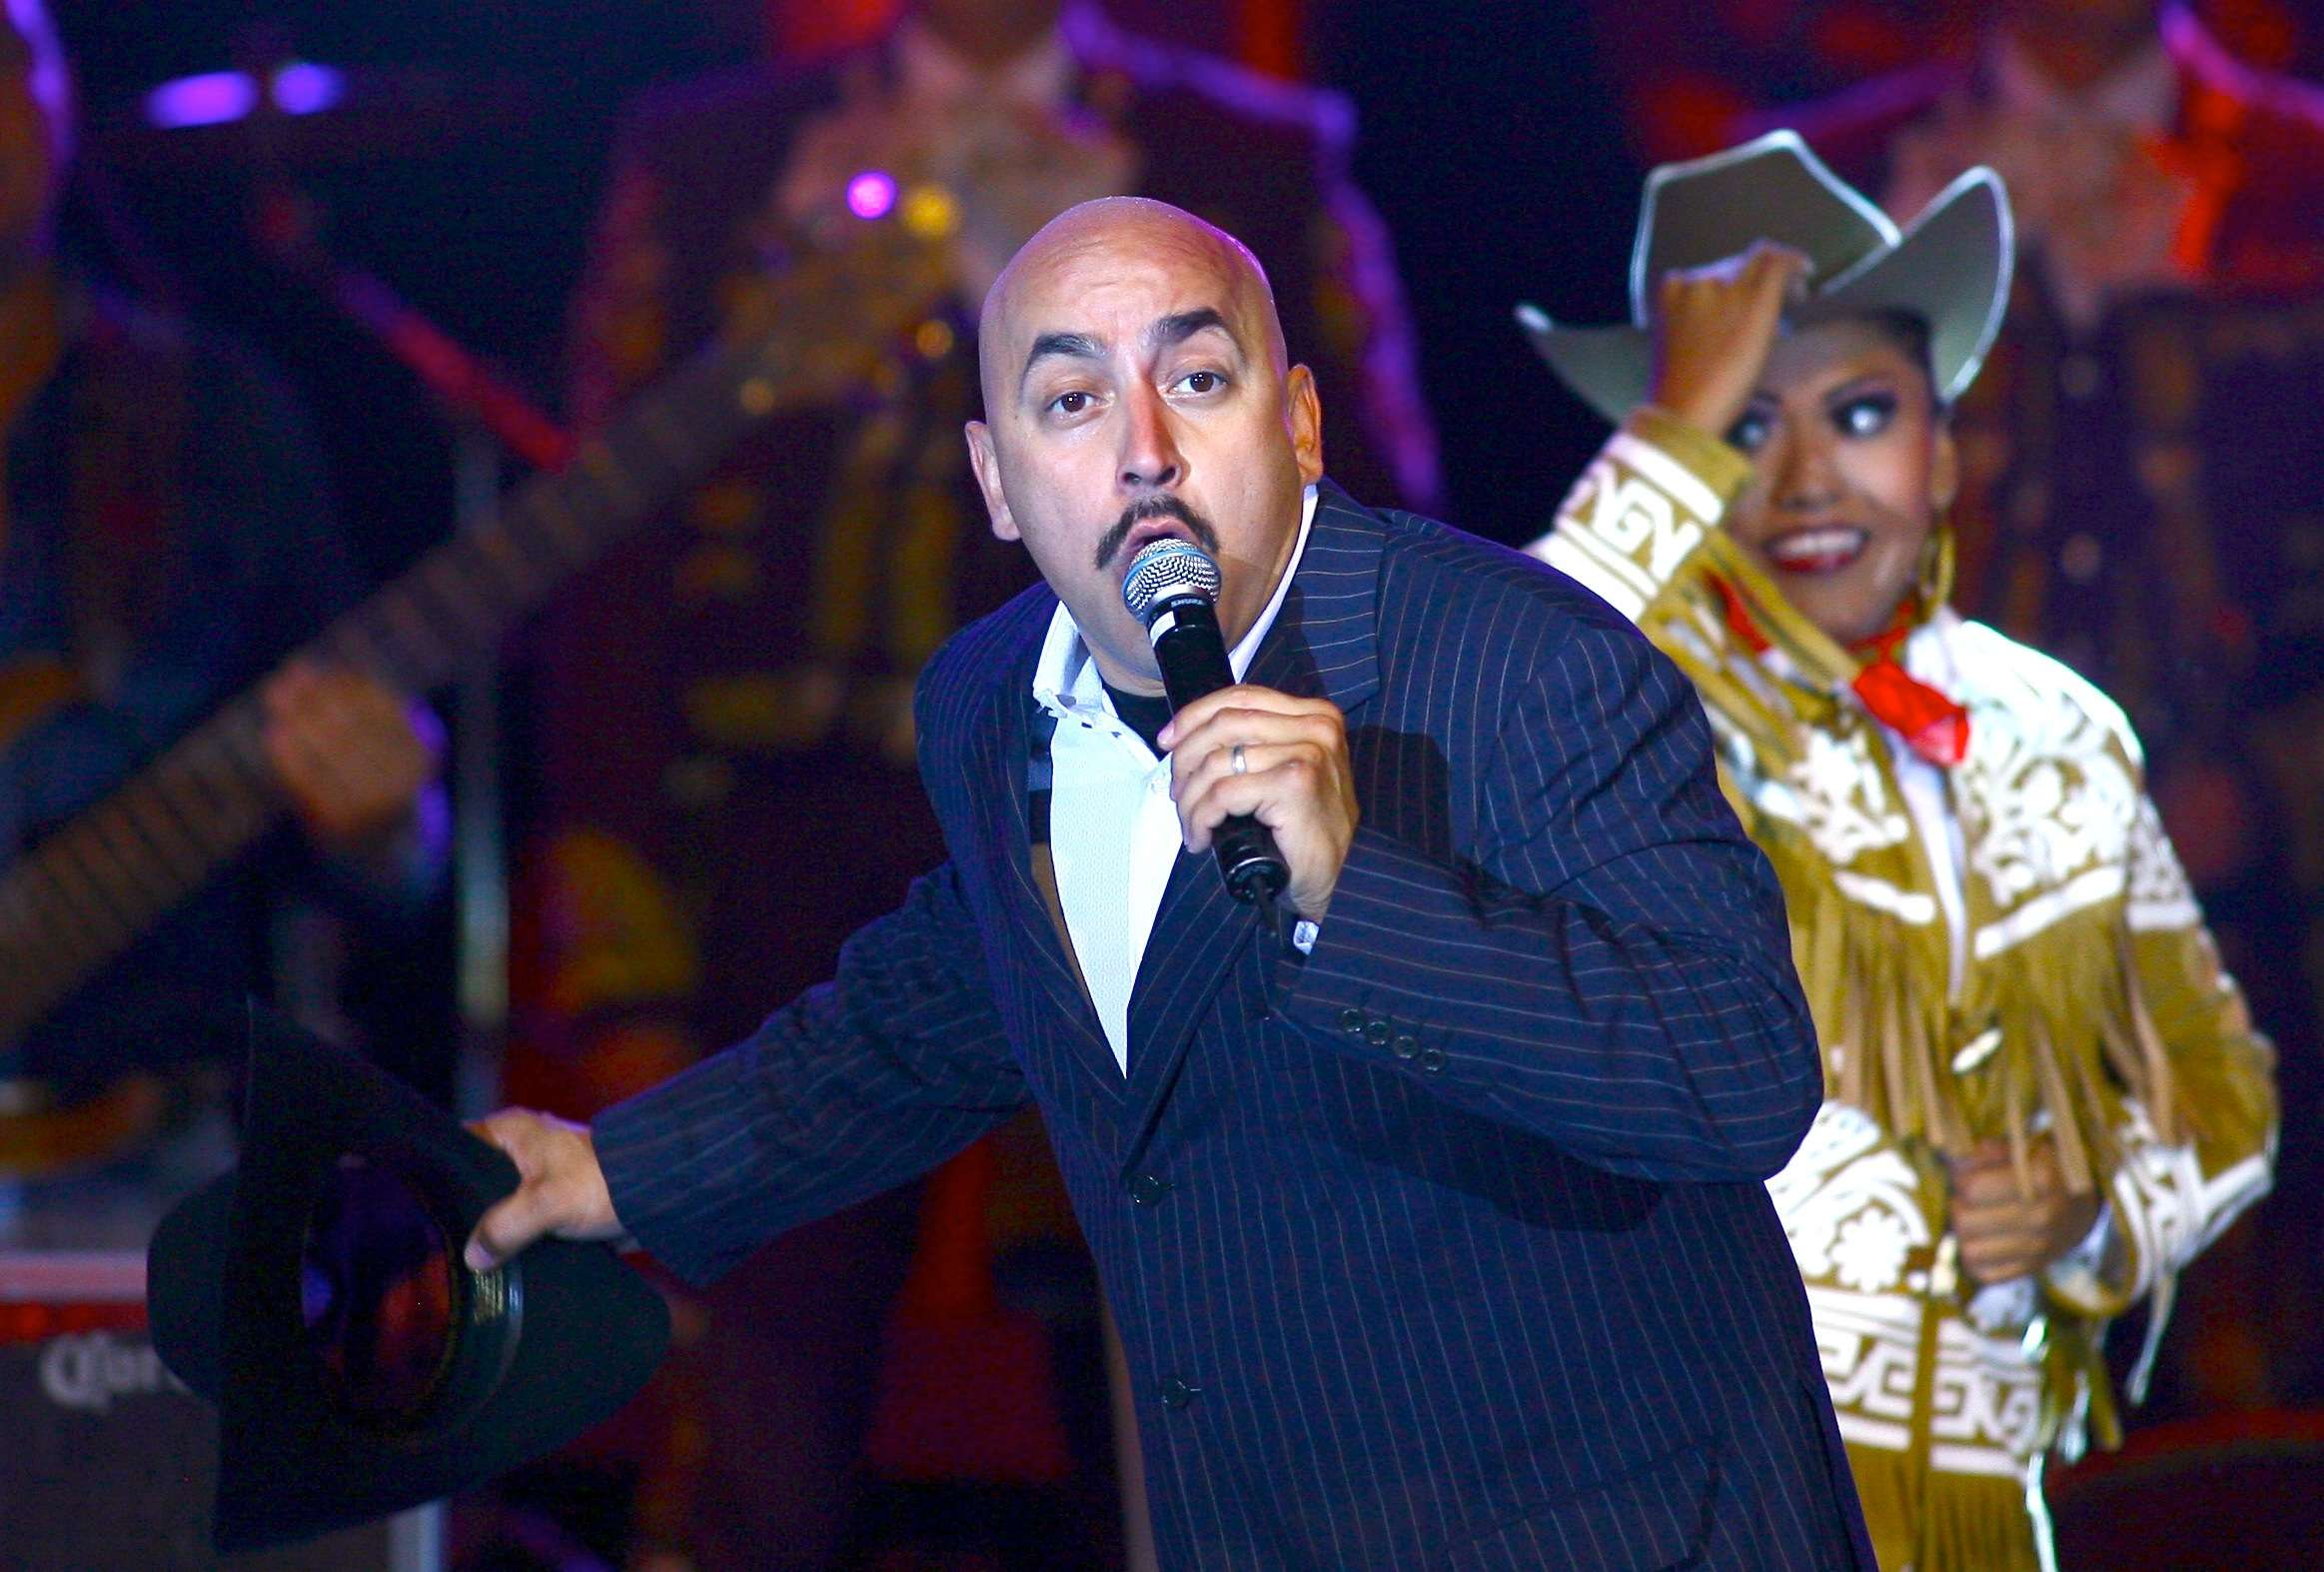 Extorsionan a Lupillo Rivera a través de fotos íntimas